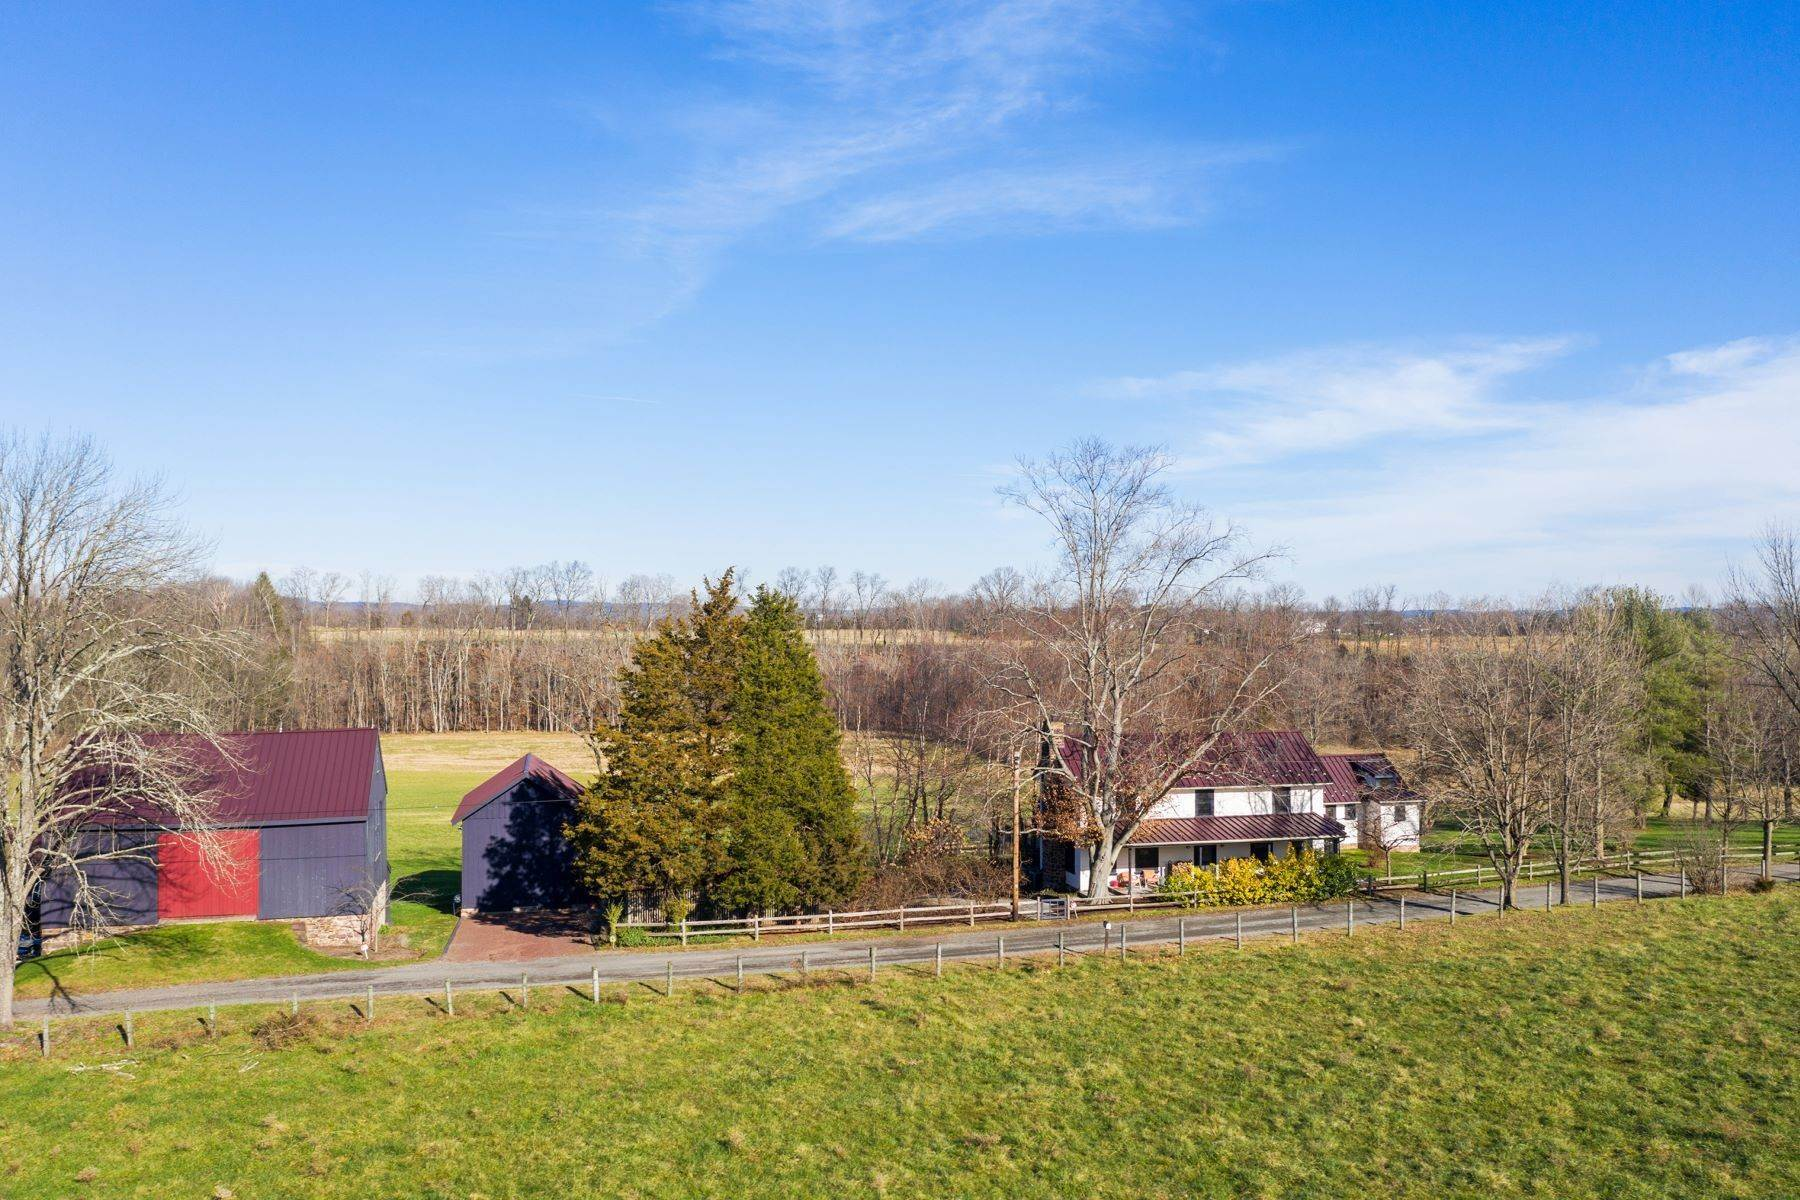 3. Single Family Homes for Sale at 110 PAPERMILL RD Barto, Pennsylvania 19504 United States